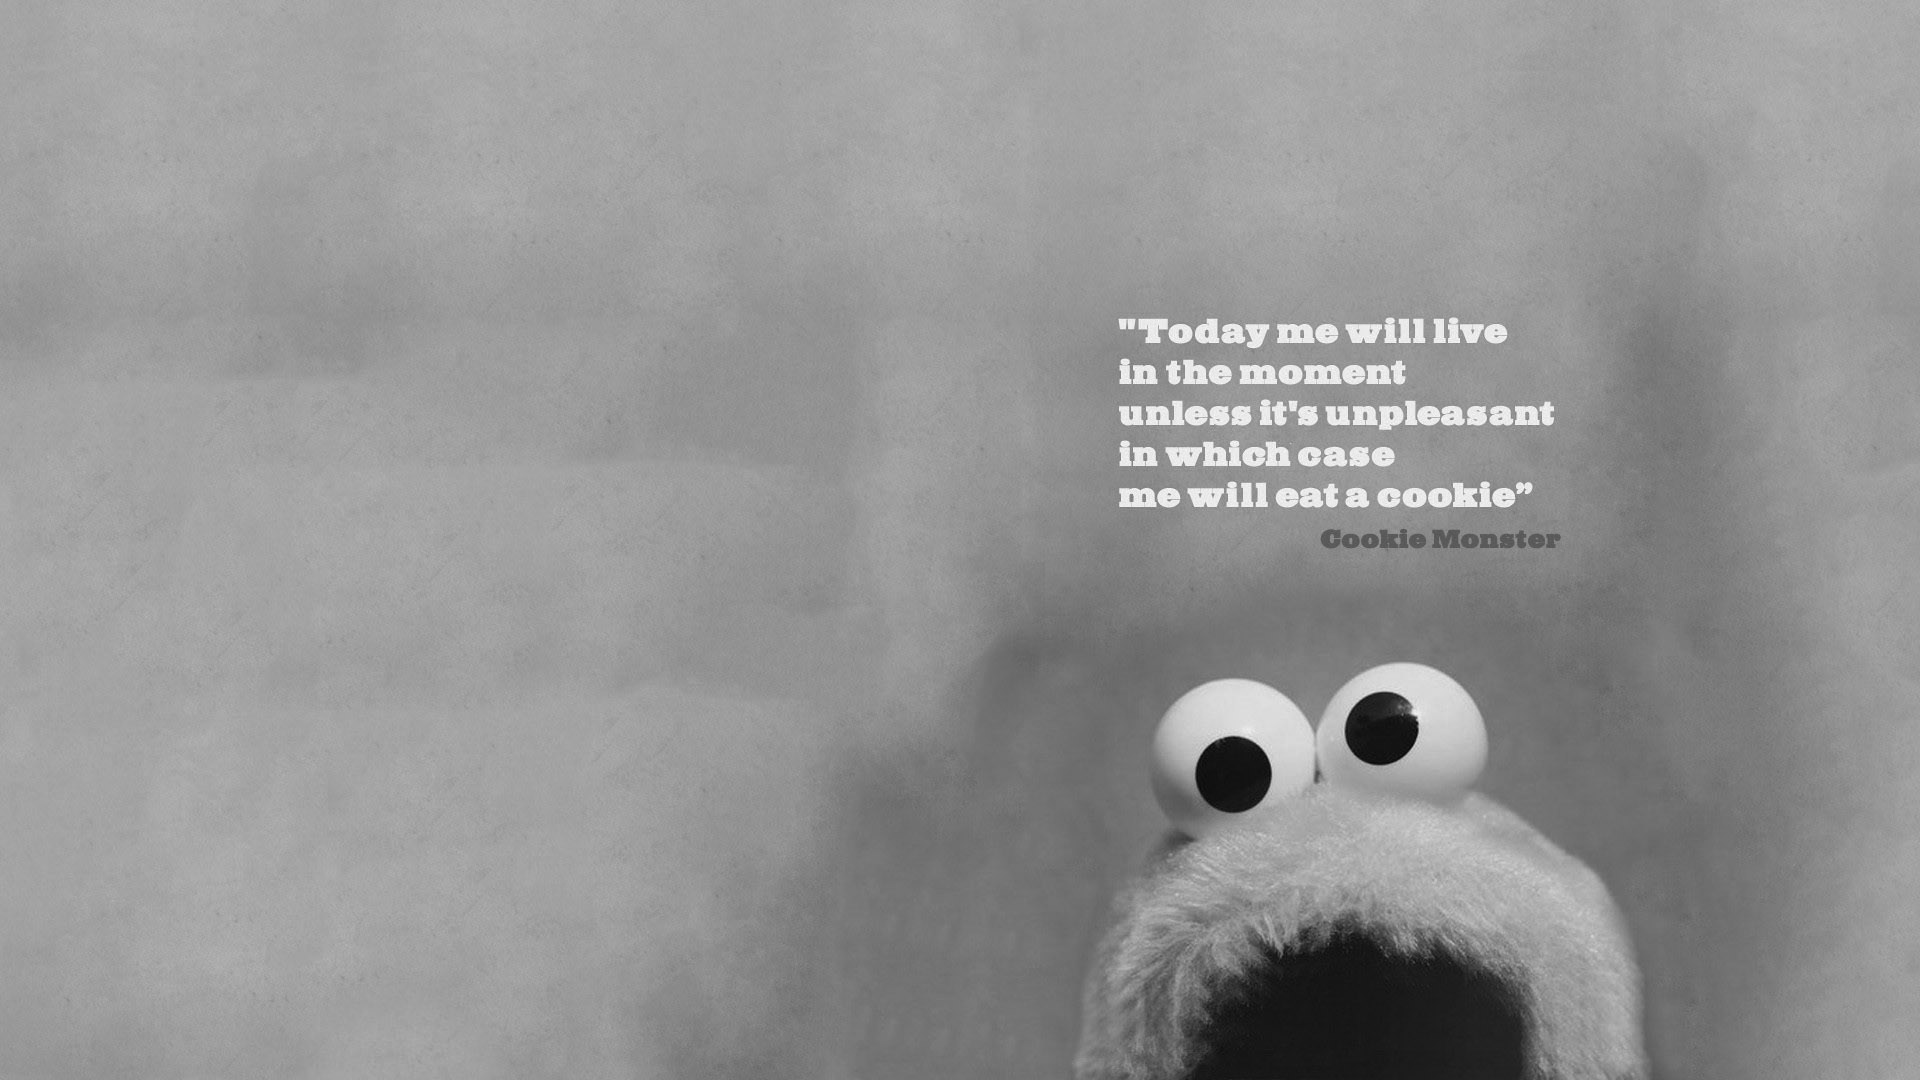 Cookie Monster Quote Wallpaper The Top 5 Ways To Make You More Unproductive Nlp